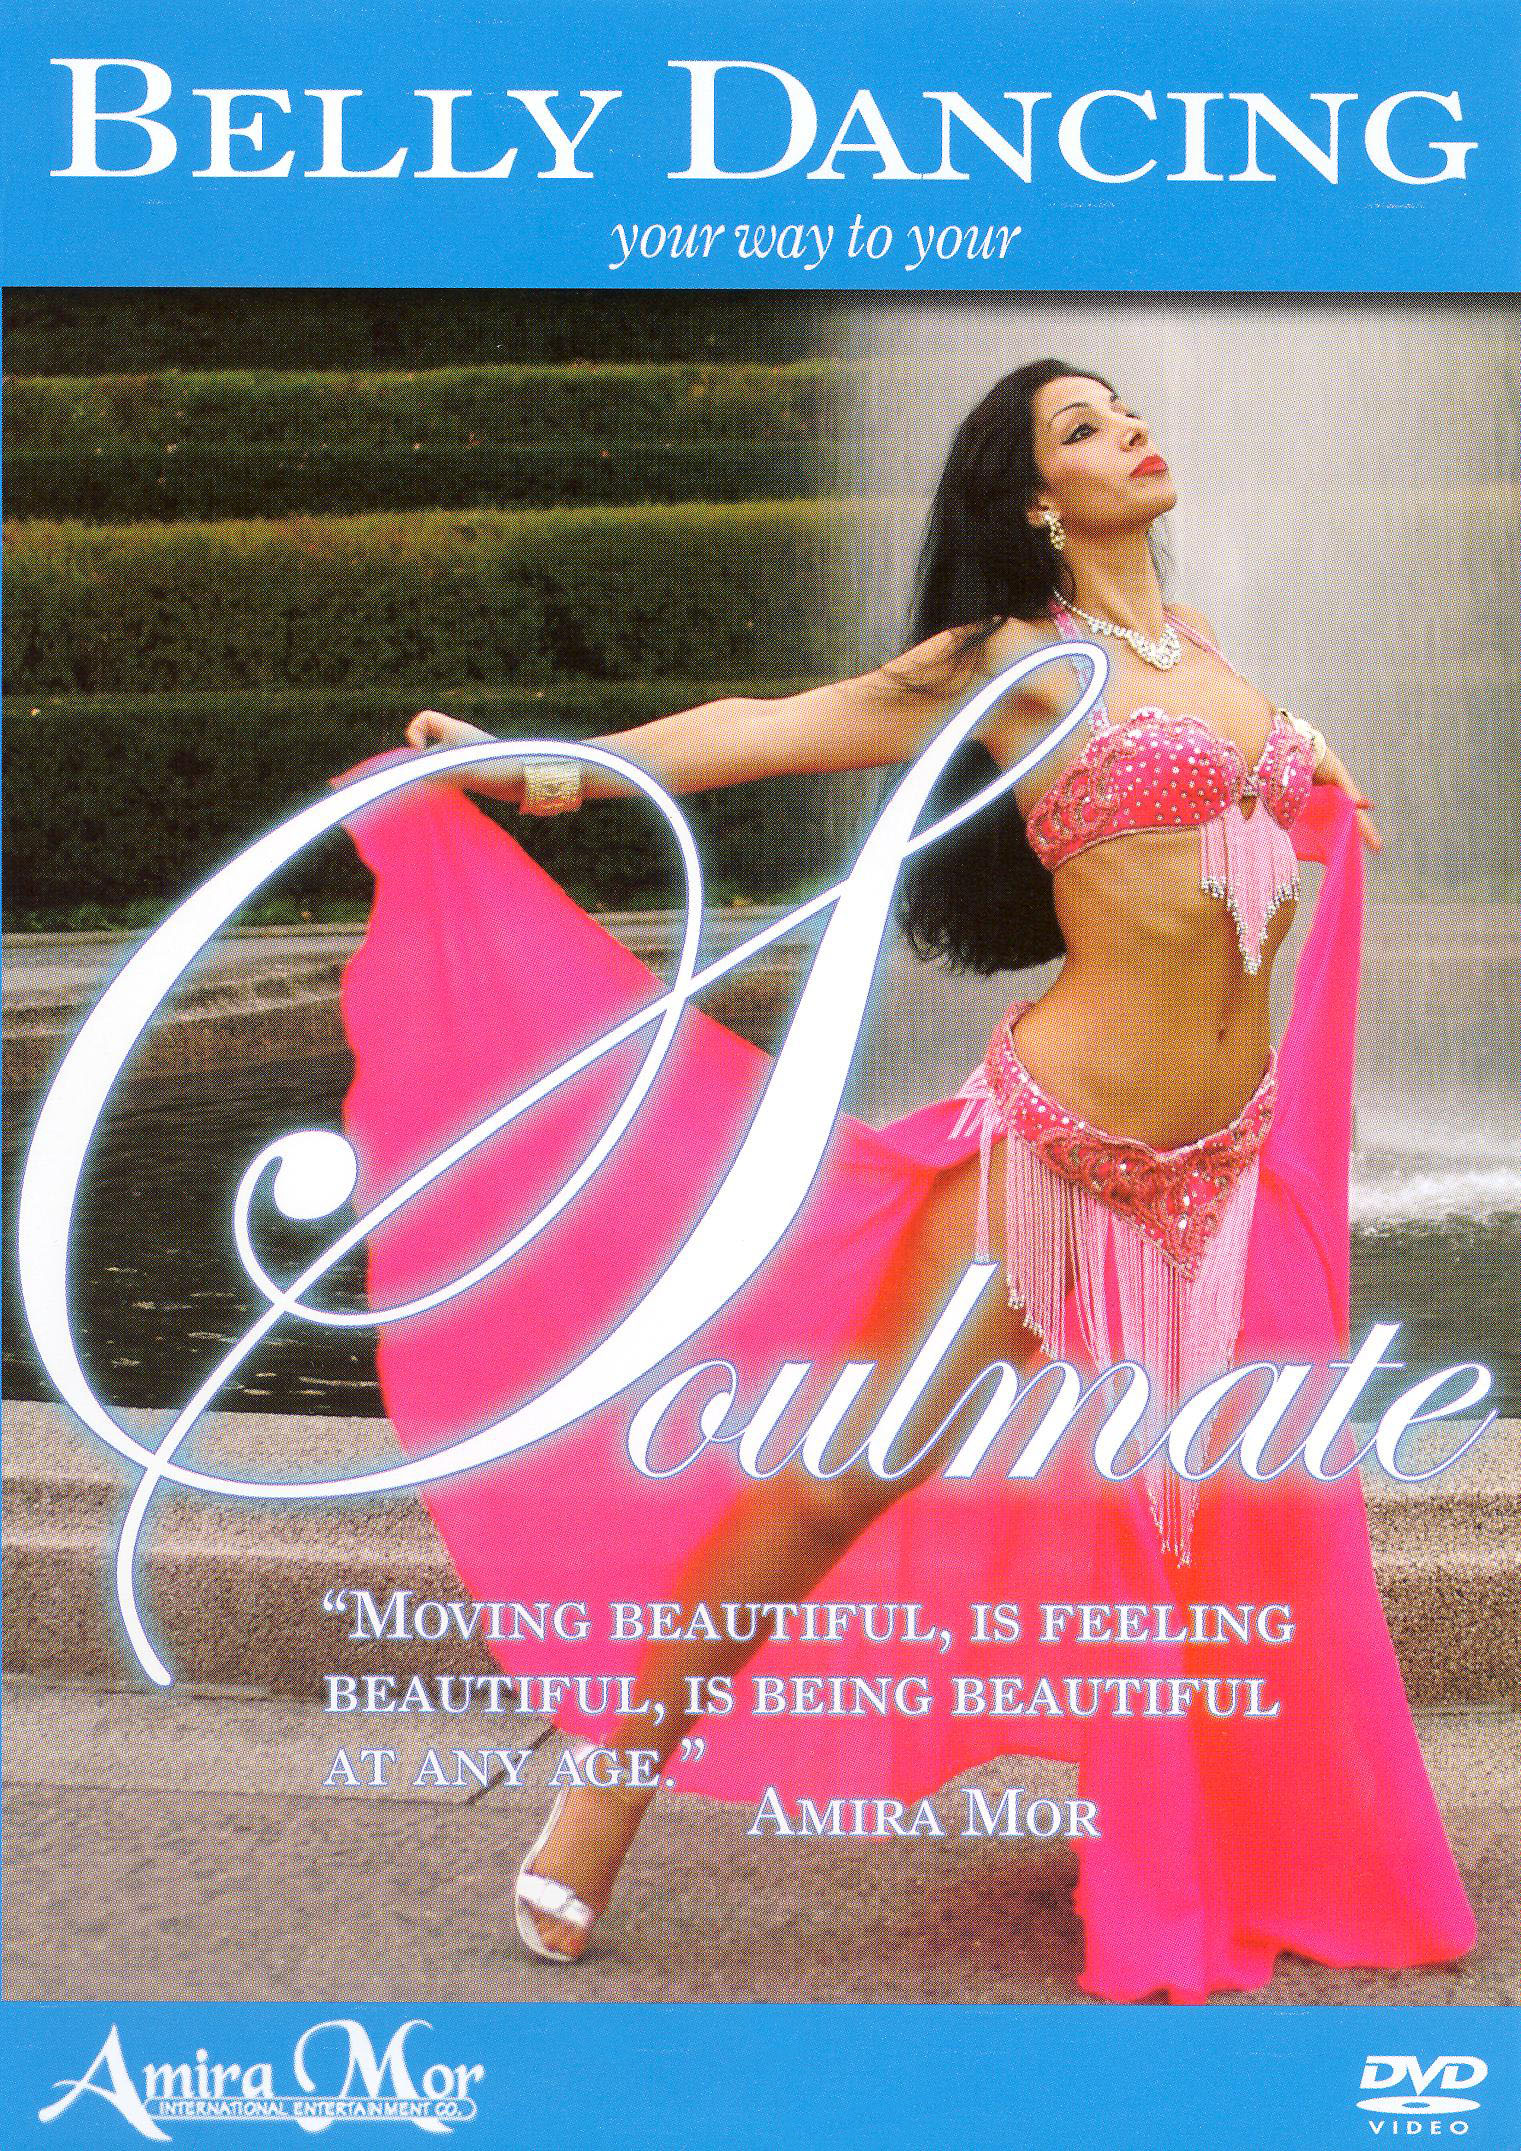 Belly Dance Your Way to Your Soul